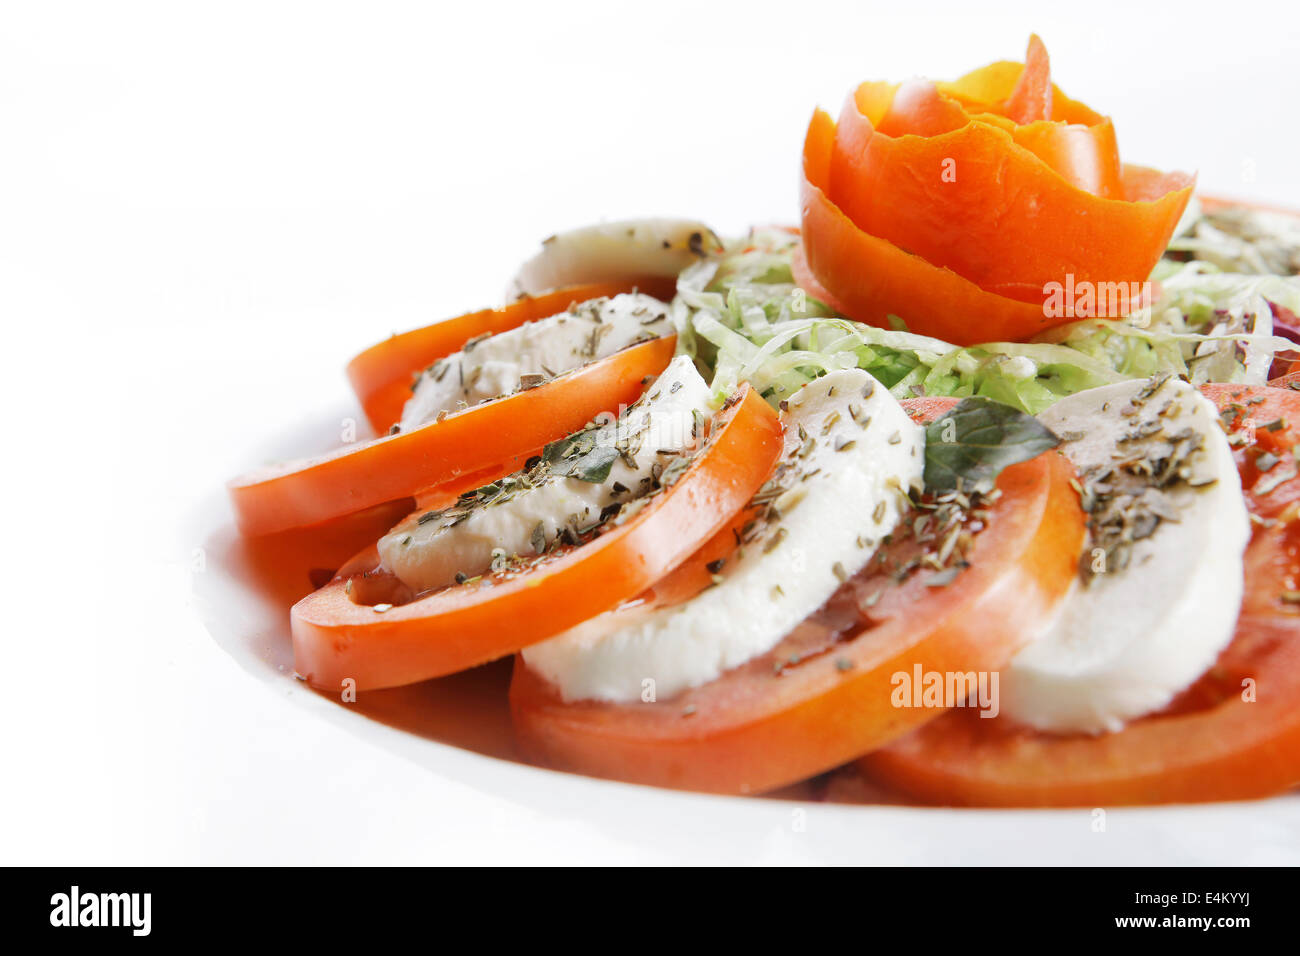 a plate of tomatoe and white cheese with styling - Stock Image